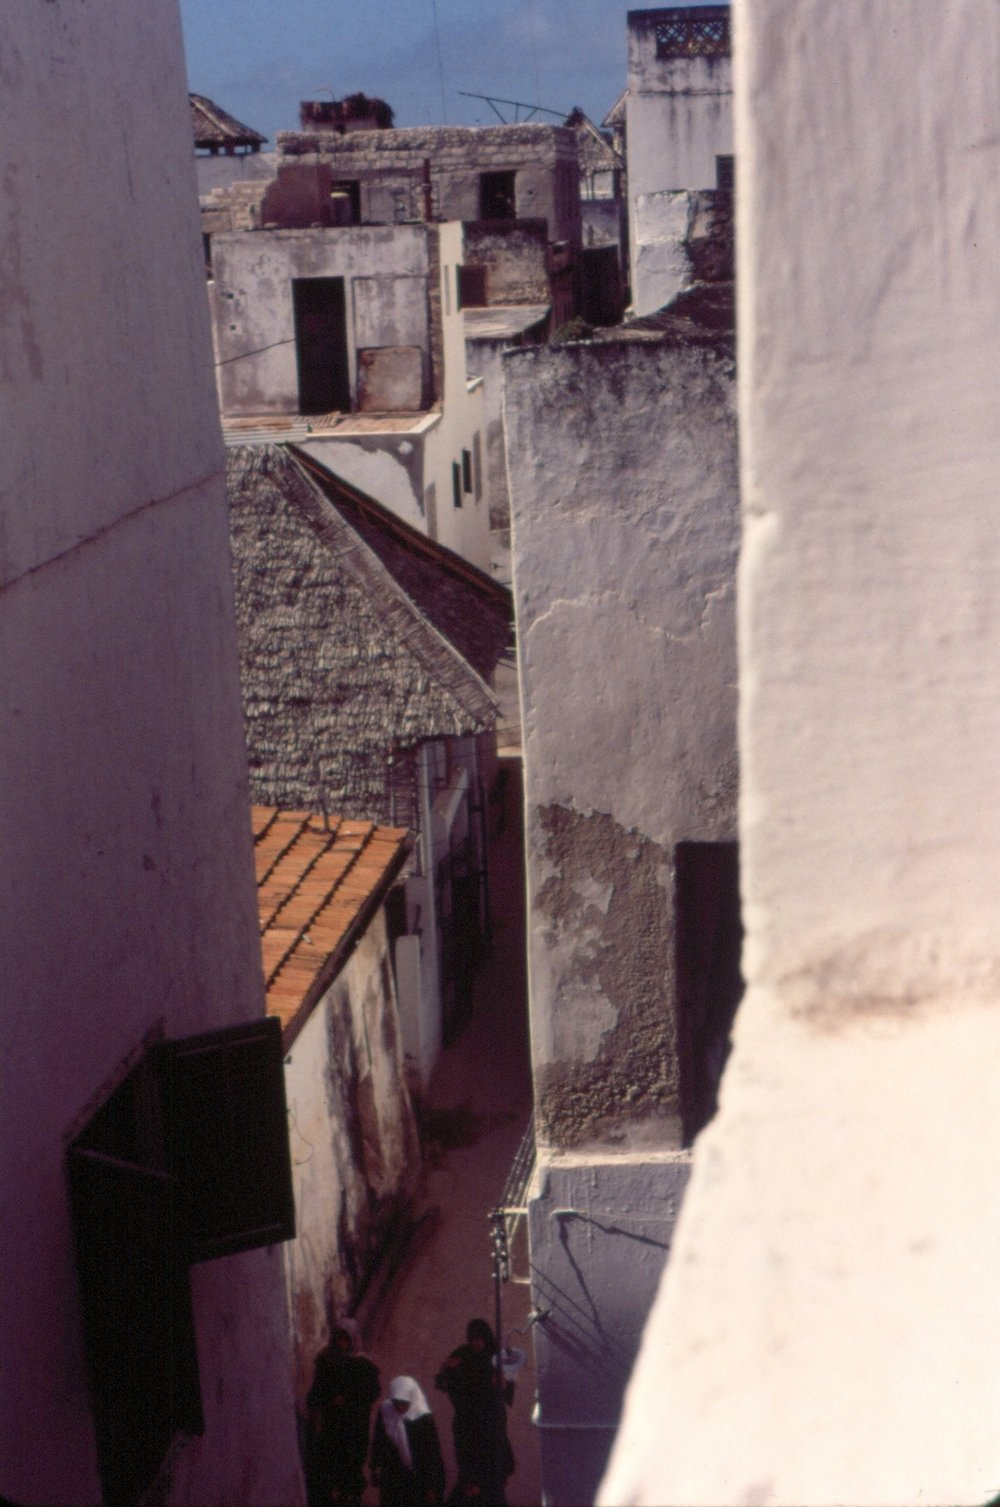 Lamu town buildings and street, Kenya, Summer 1994, Photo by (3) cropped.jpg